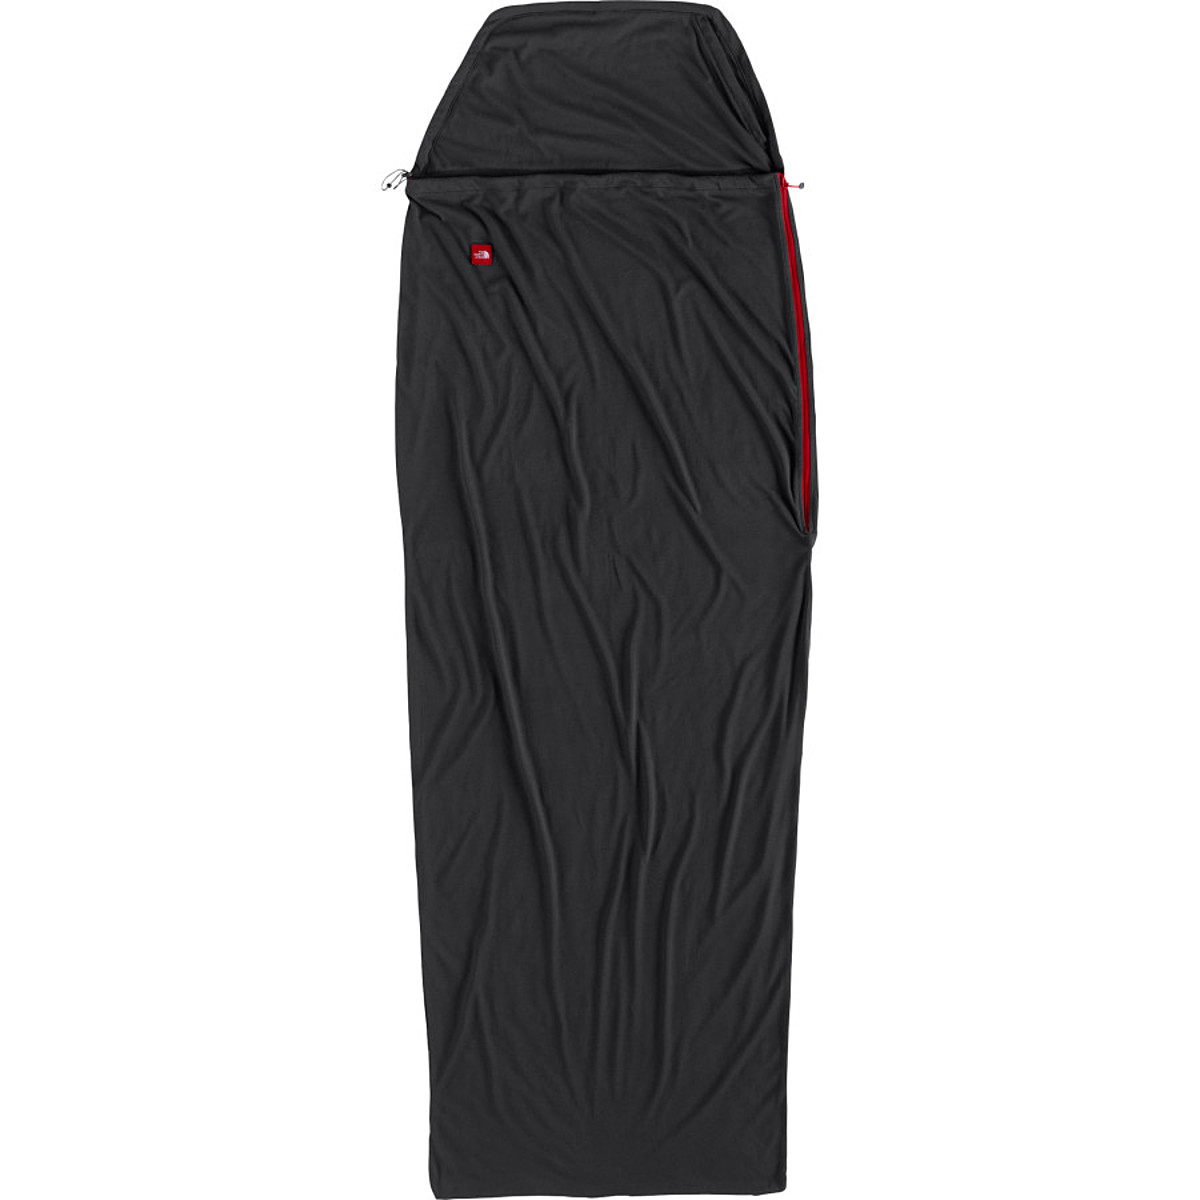 The North Face Liner Bag